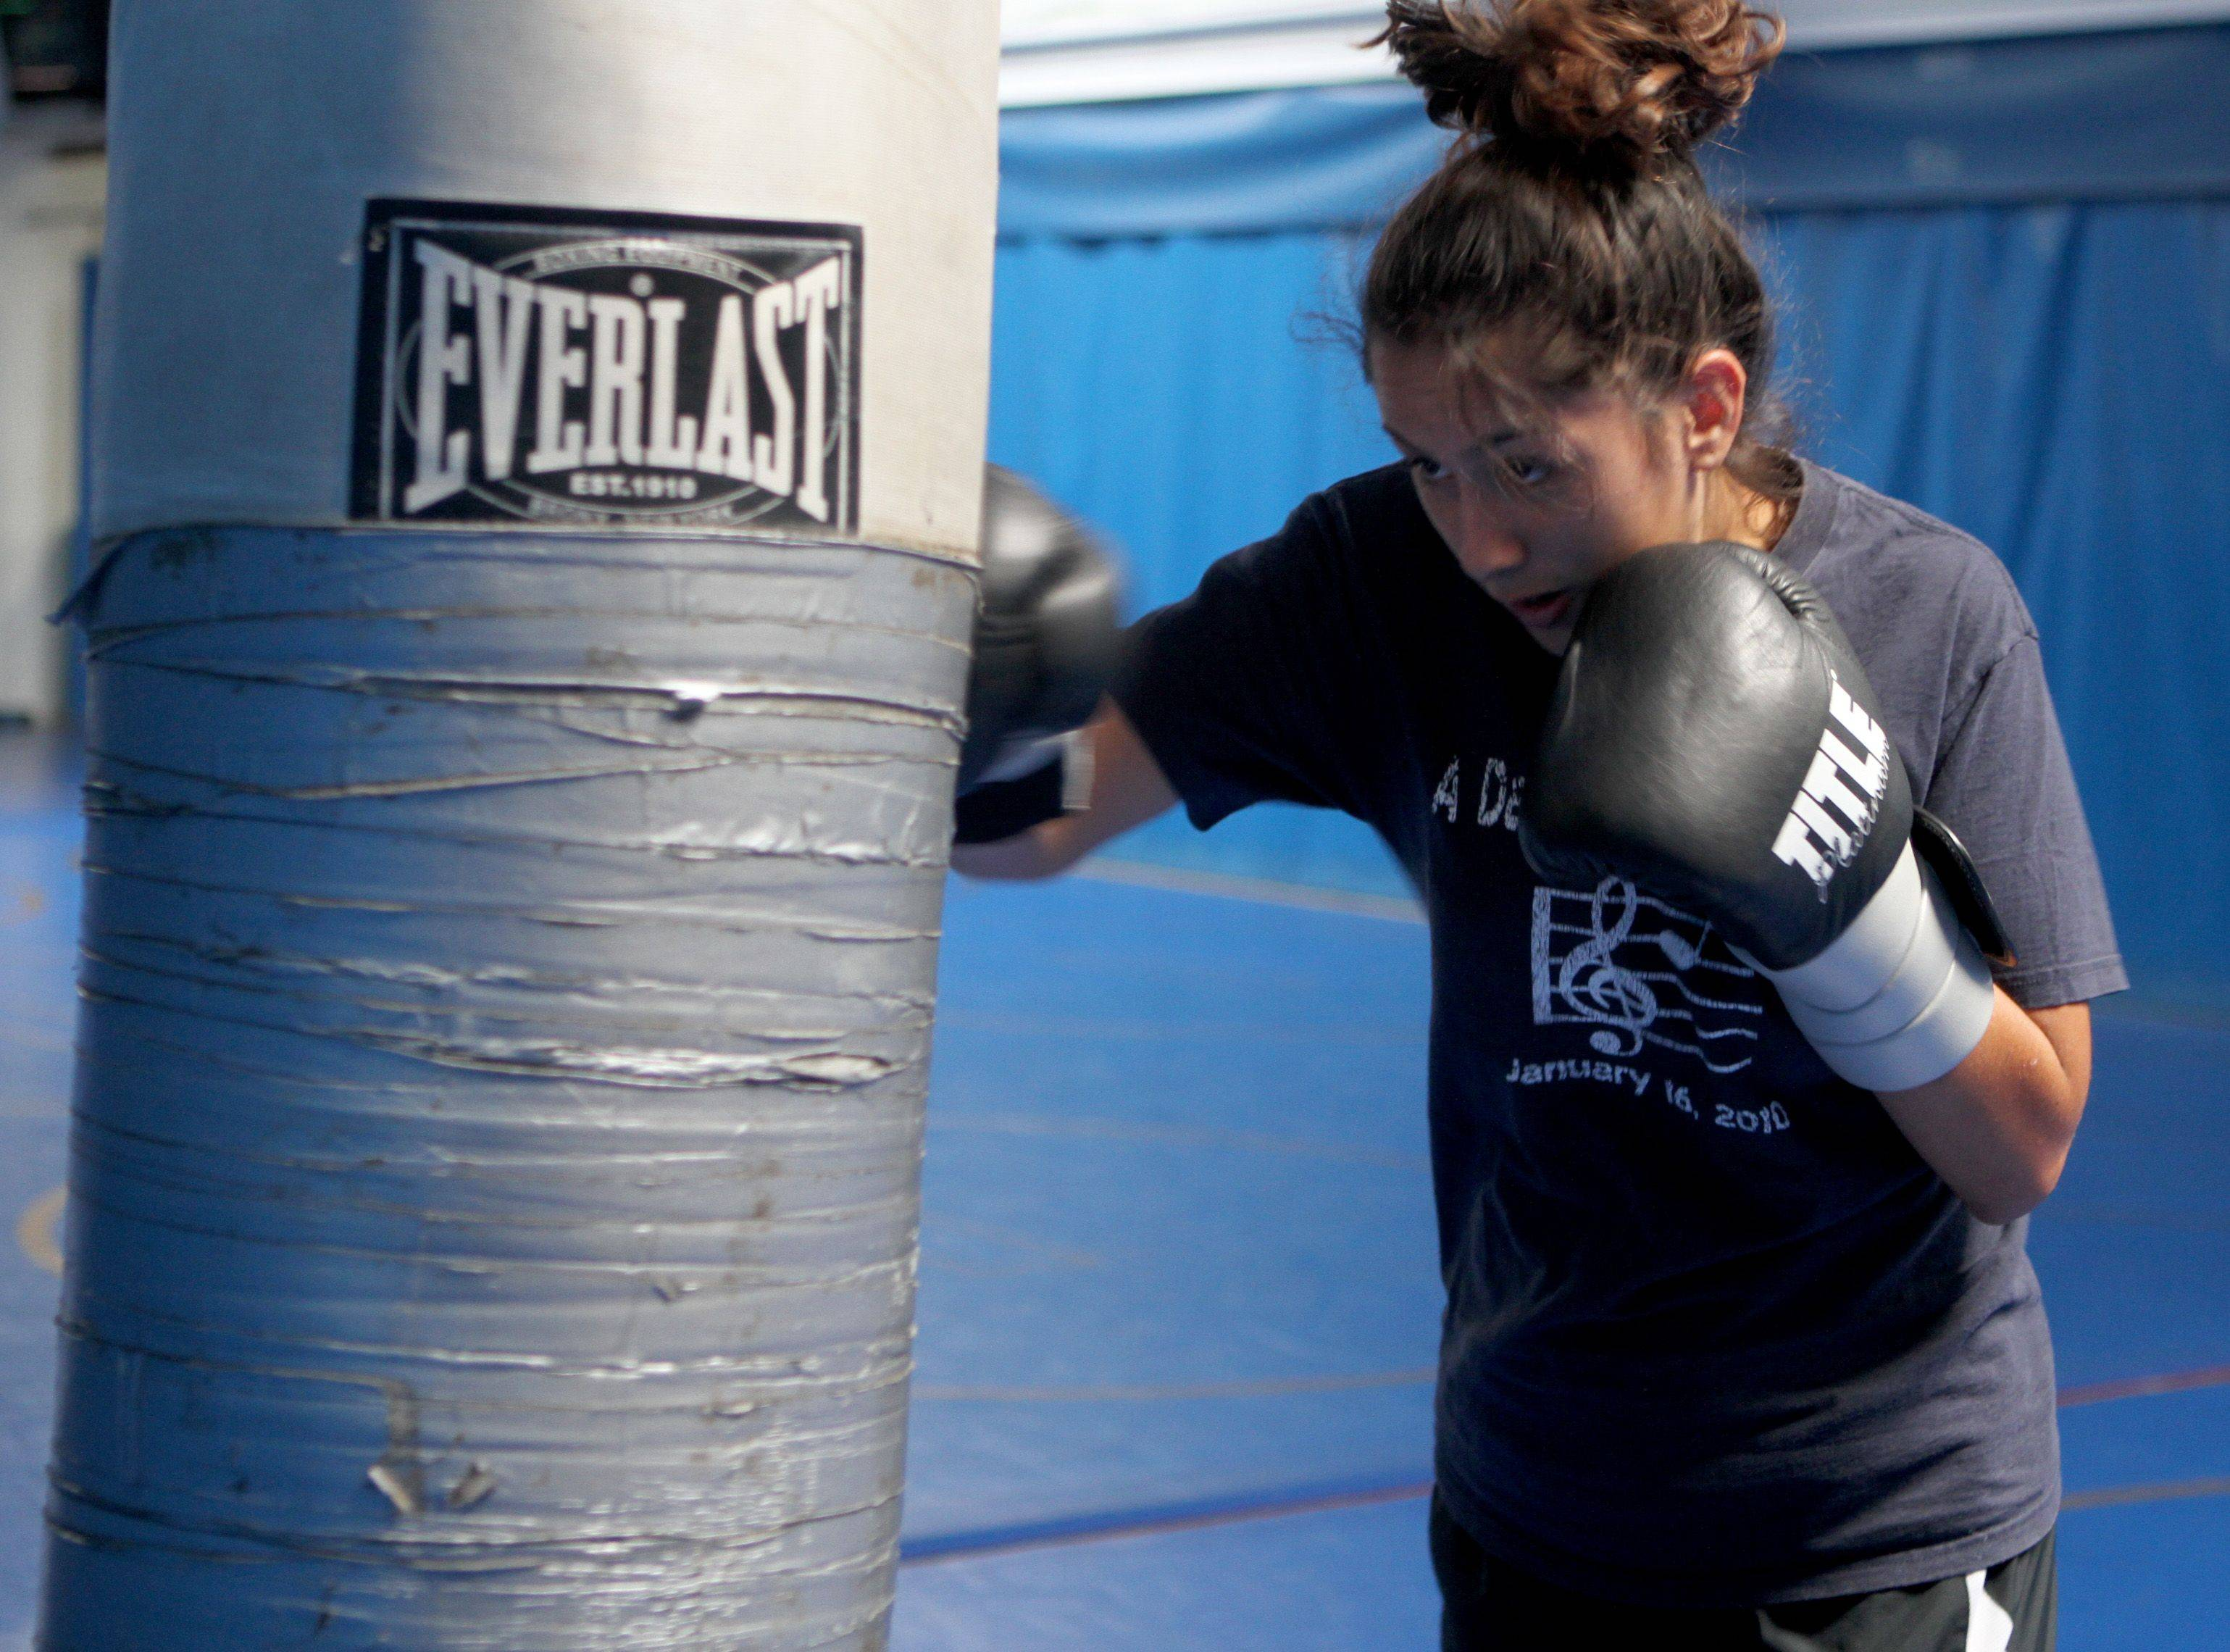 Maribel Aguilar, a junior, practices with a punching bag during boxing club practice at Wheeling High School. This fall marks the fourth year of the club started by Mike Burke, who is also an English teacher at the school.